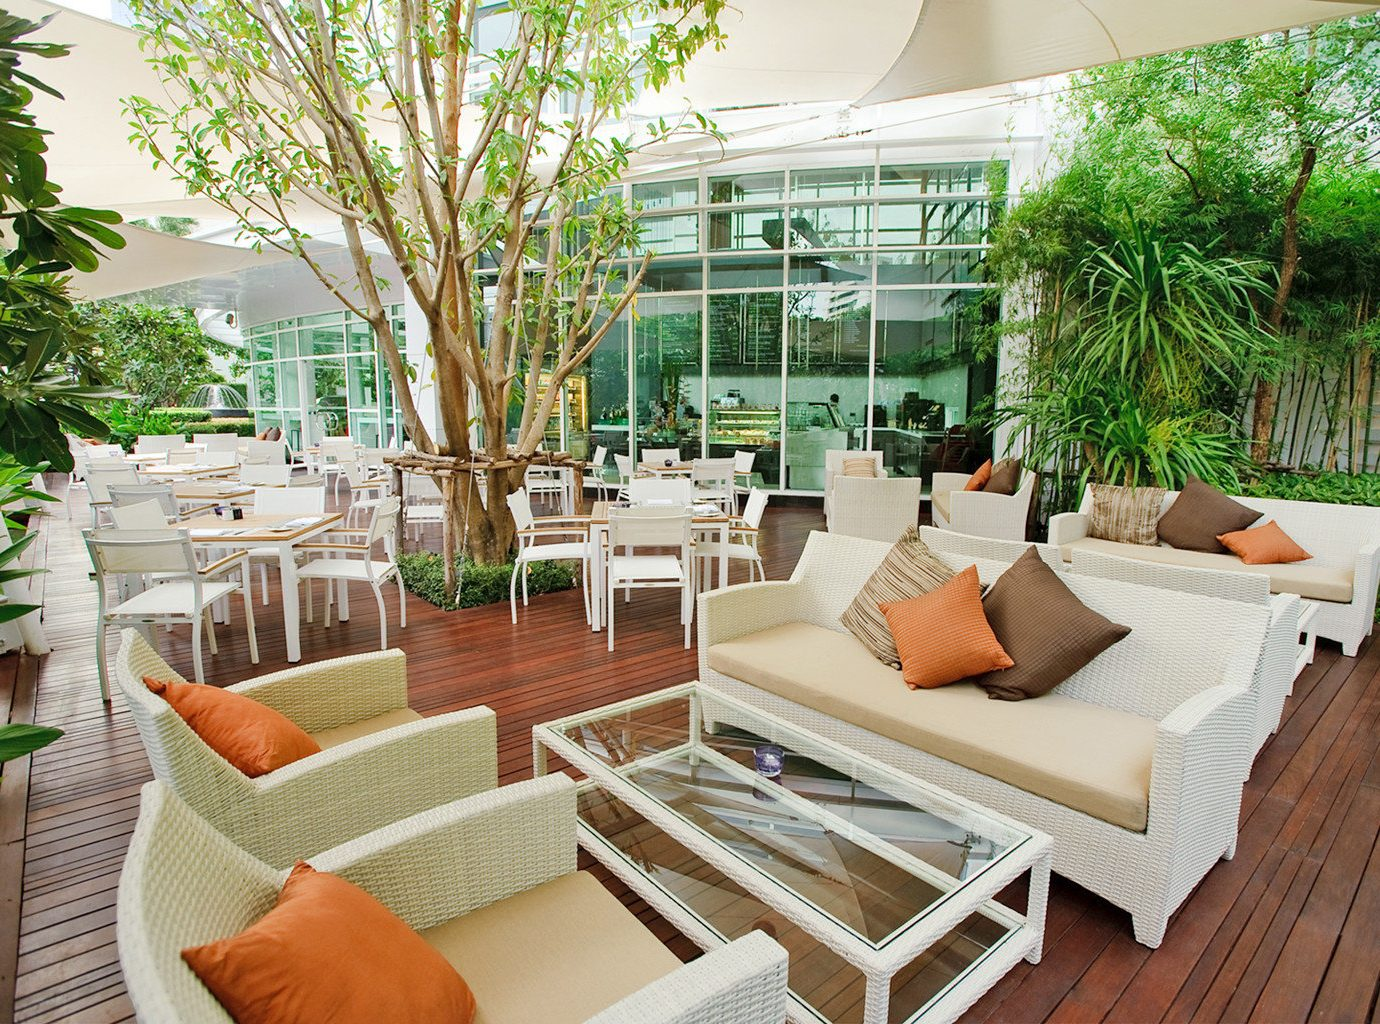 Hip Lounge Luxury Modern tree property chair condominium Resort home Courtyard Villa backyard outdoor structure living room cottage Lobby Patio porch